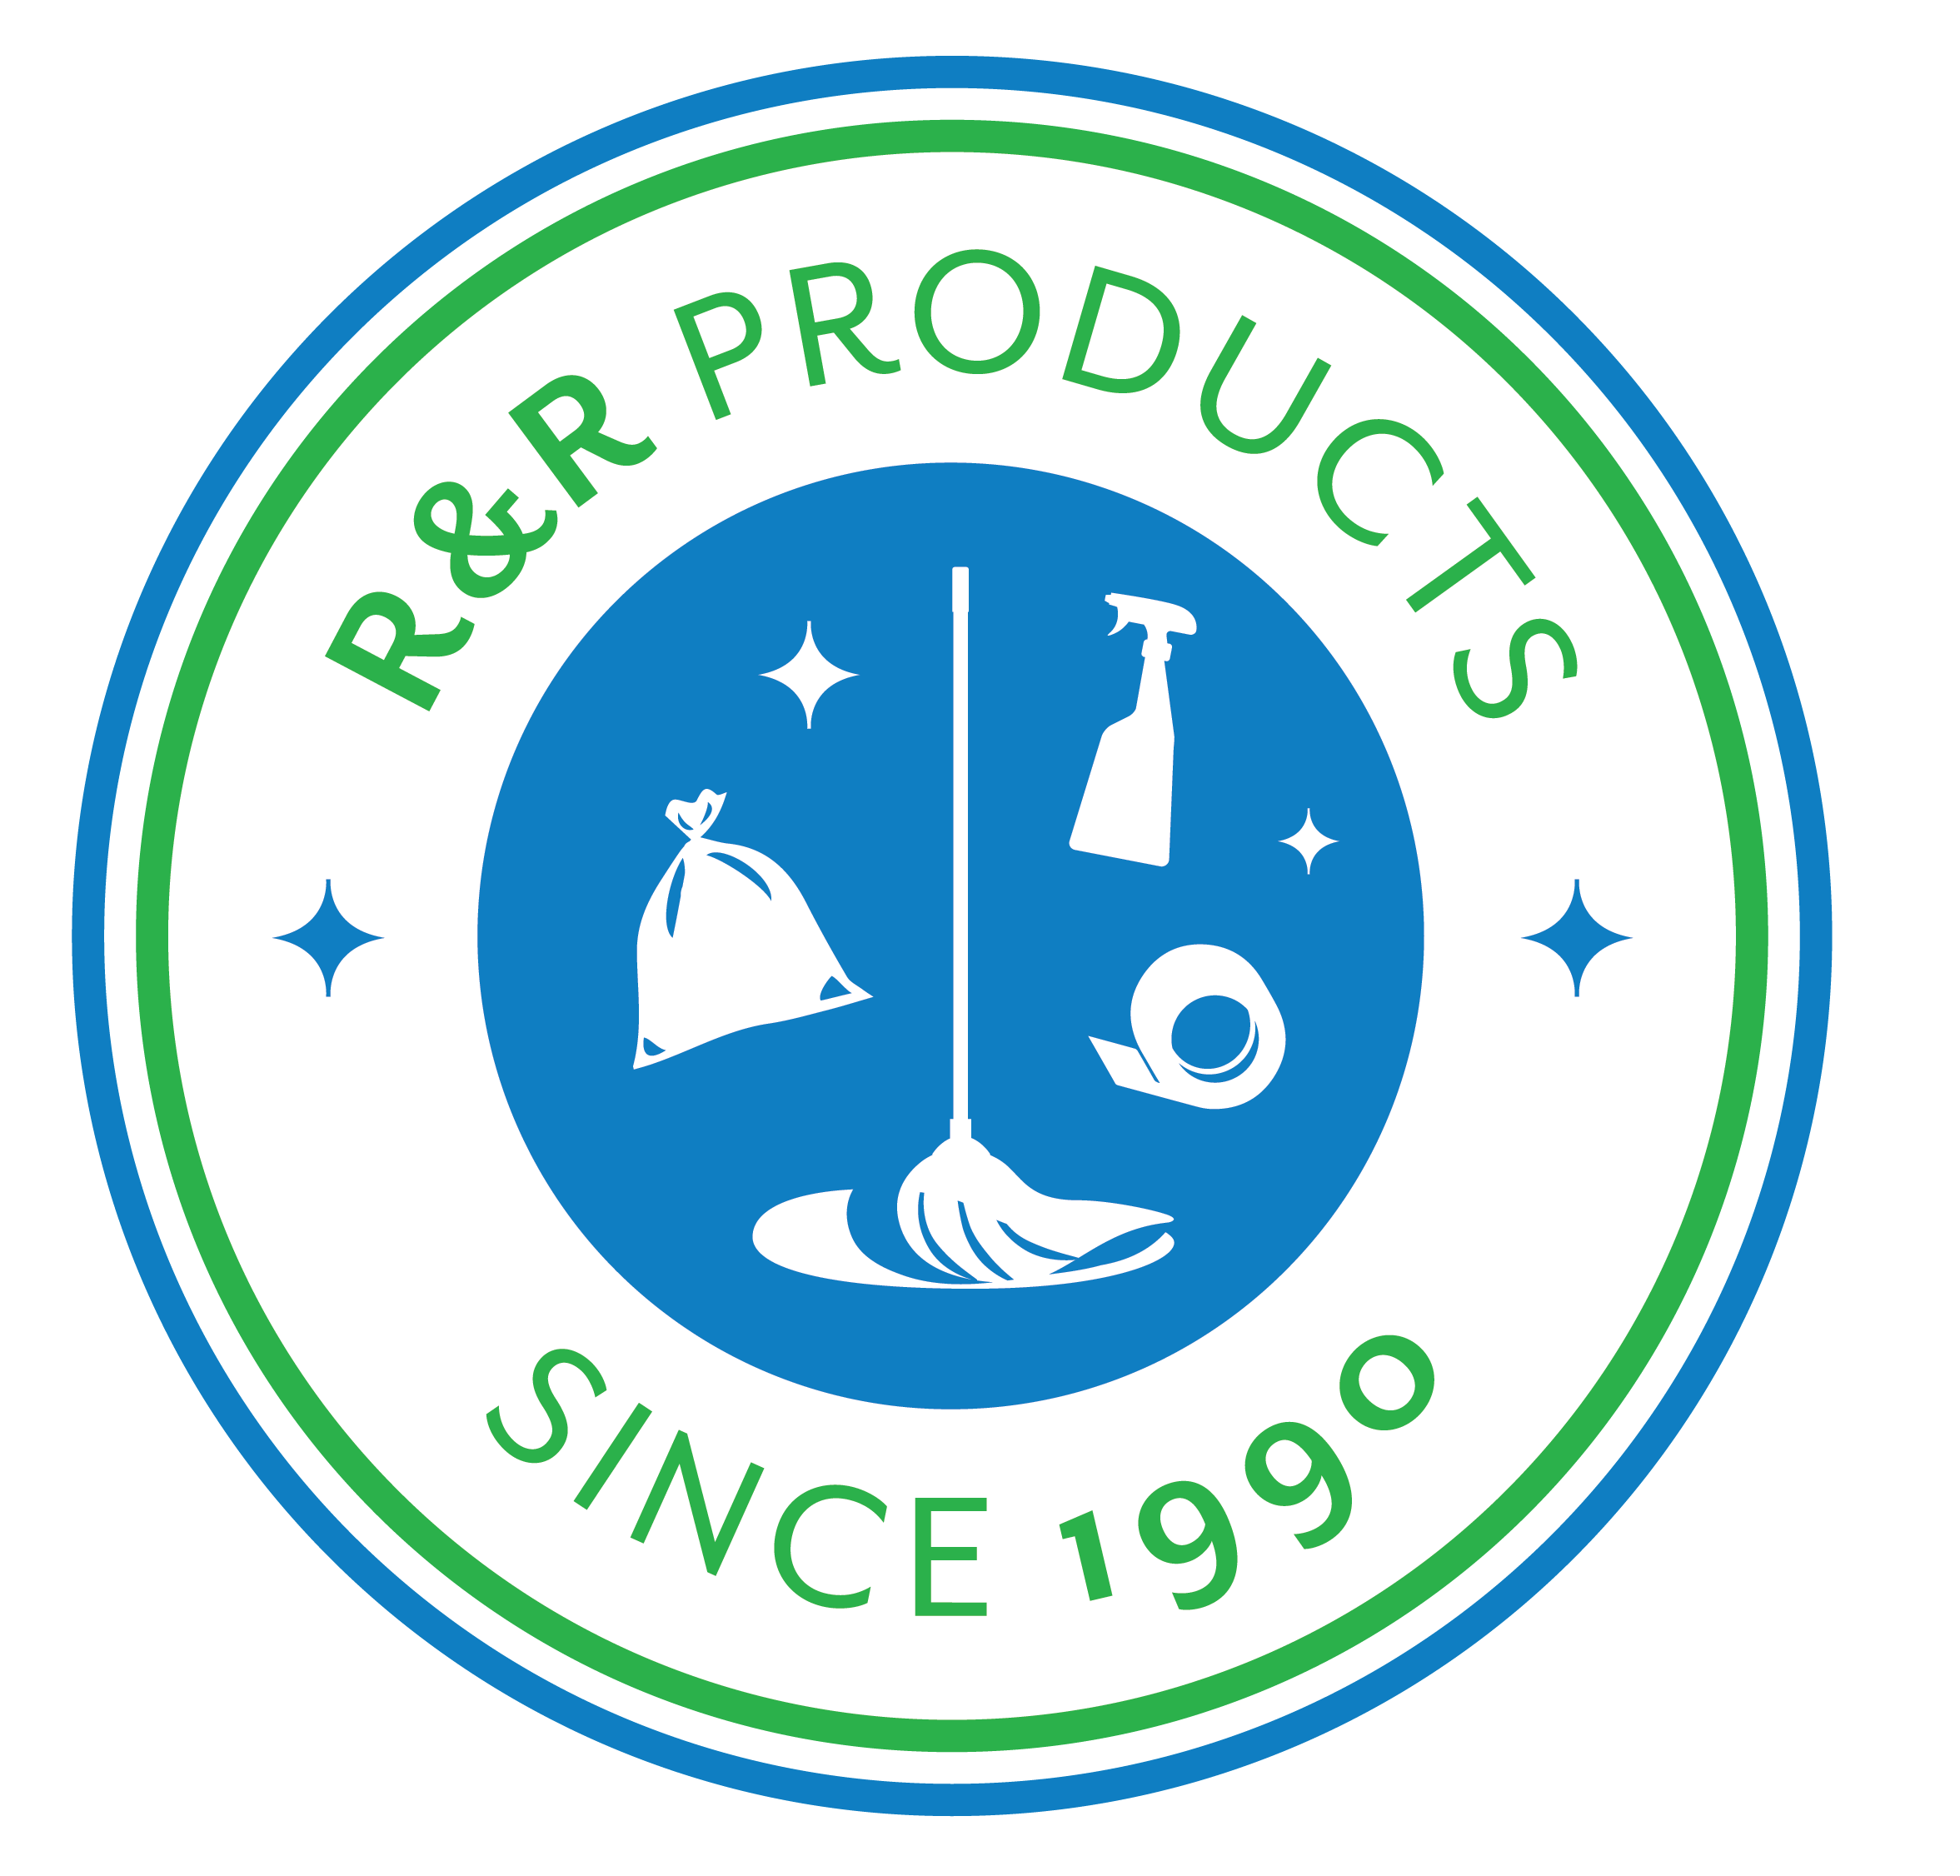 R&R Products Inc.